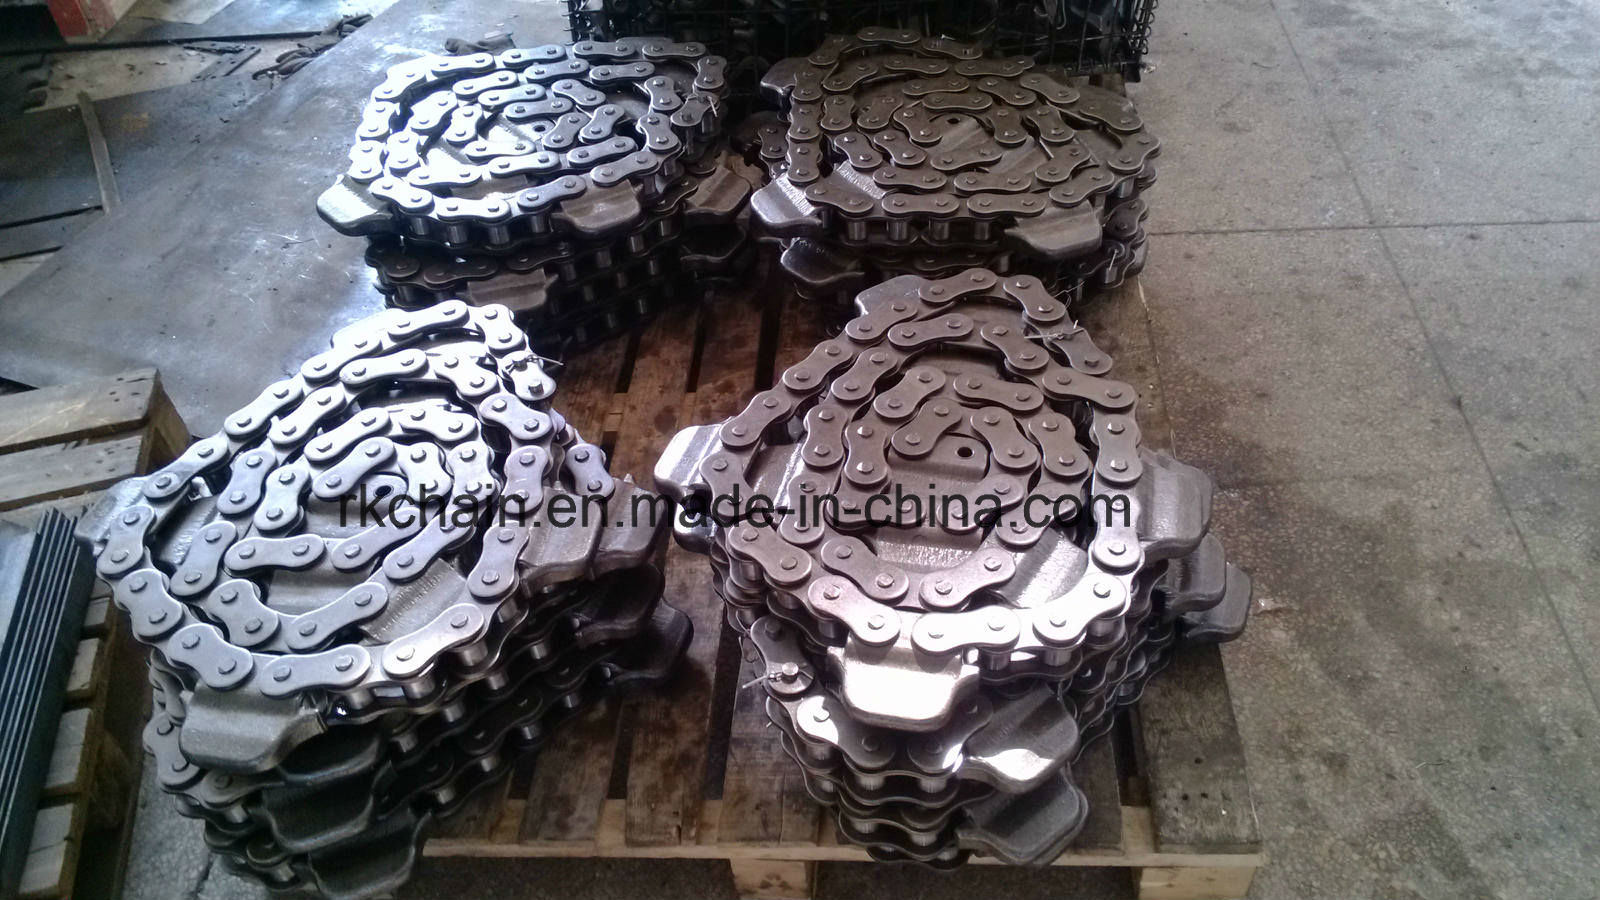 Caterpillar Driving Transmission Chain for Conveyor System